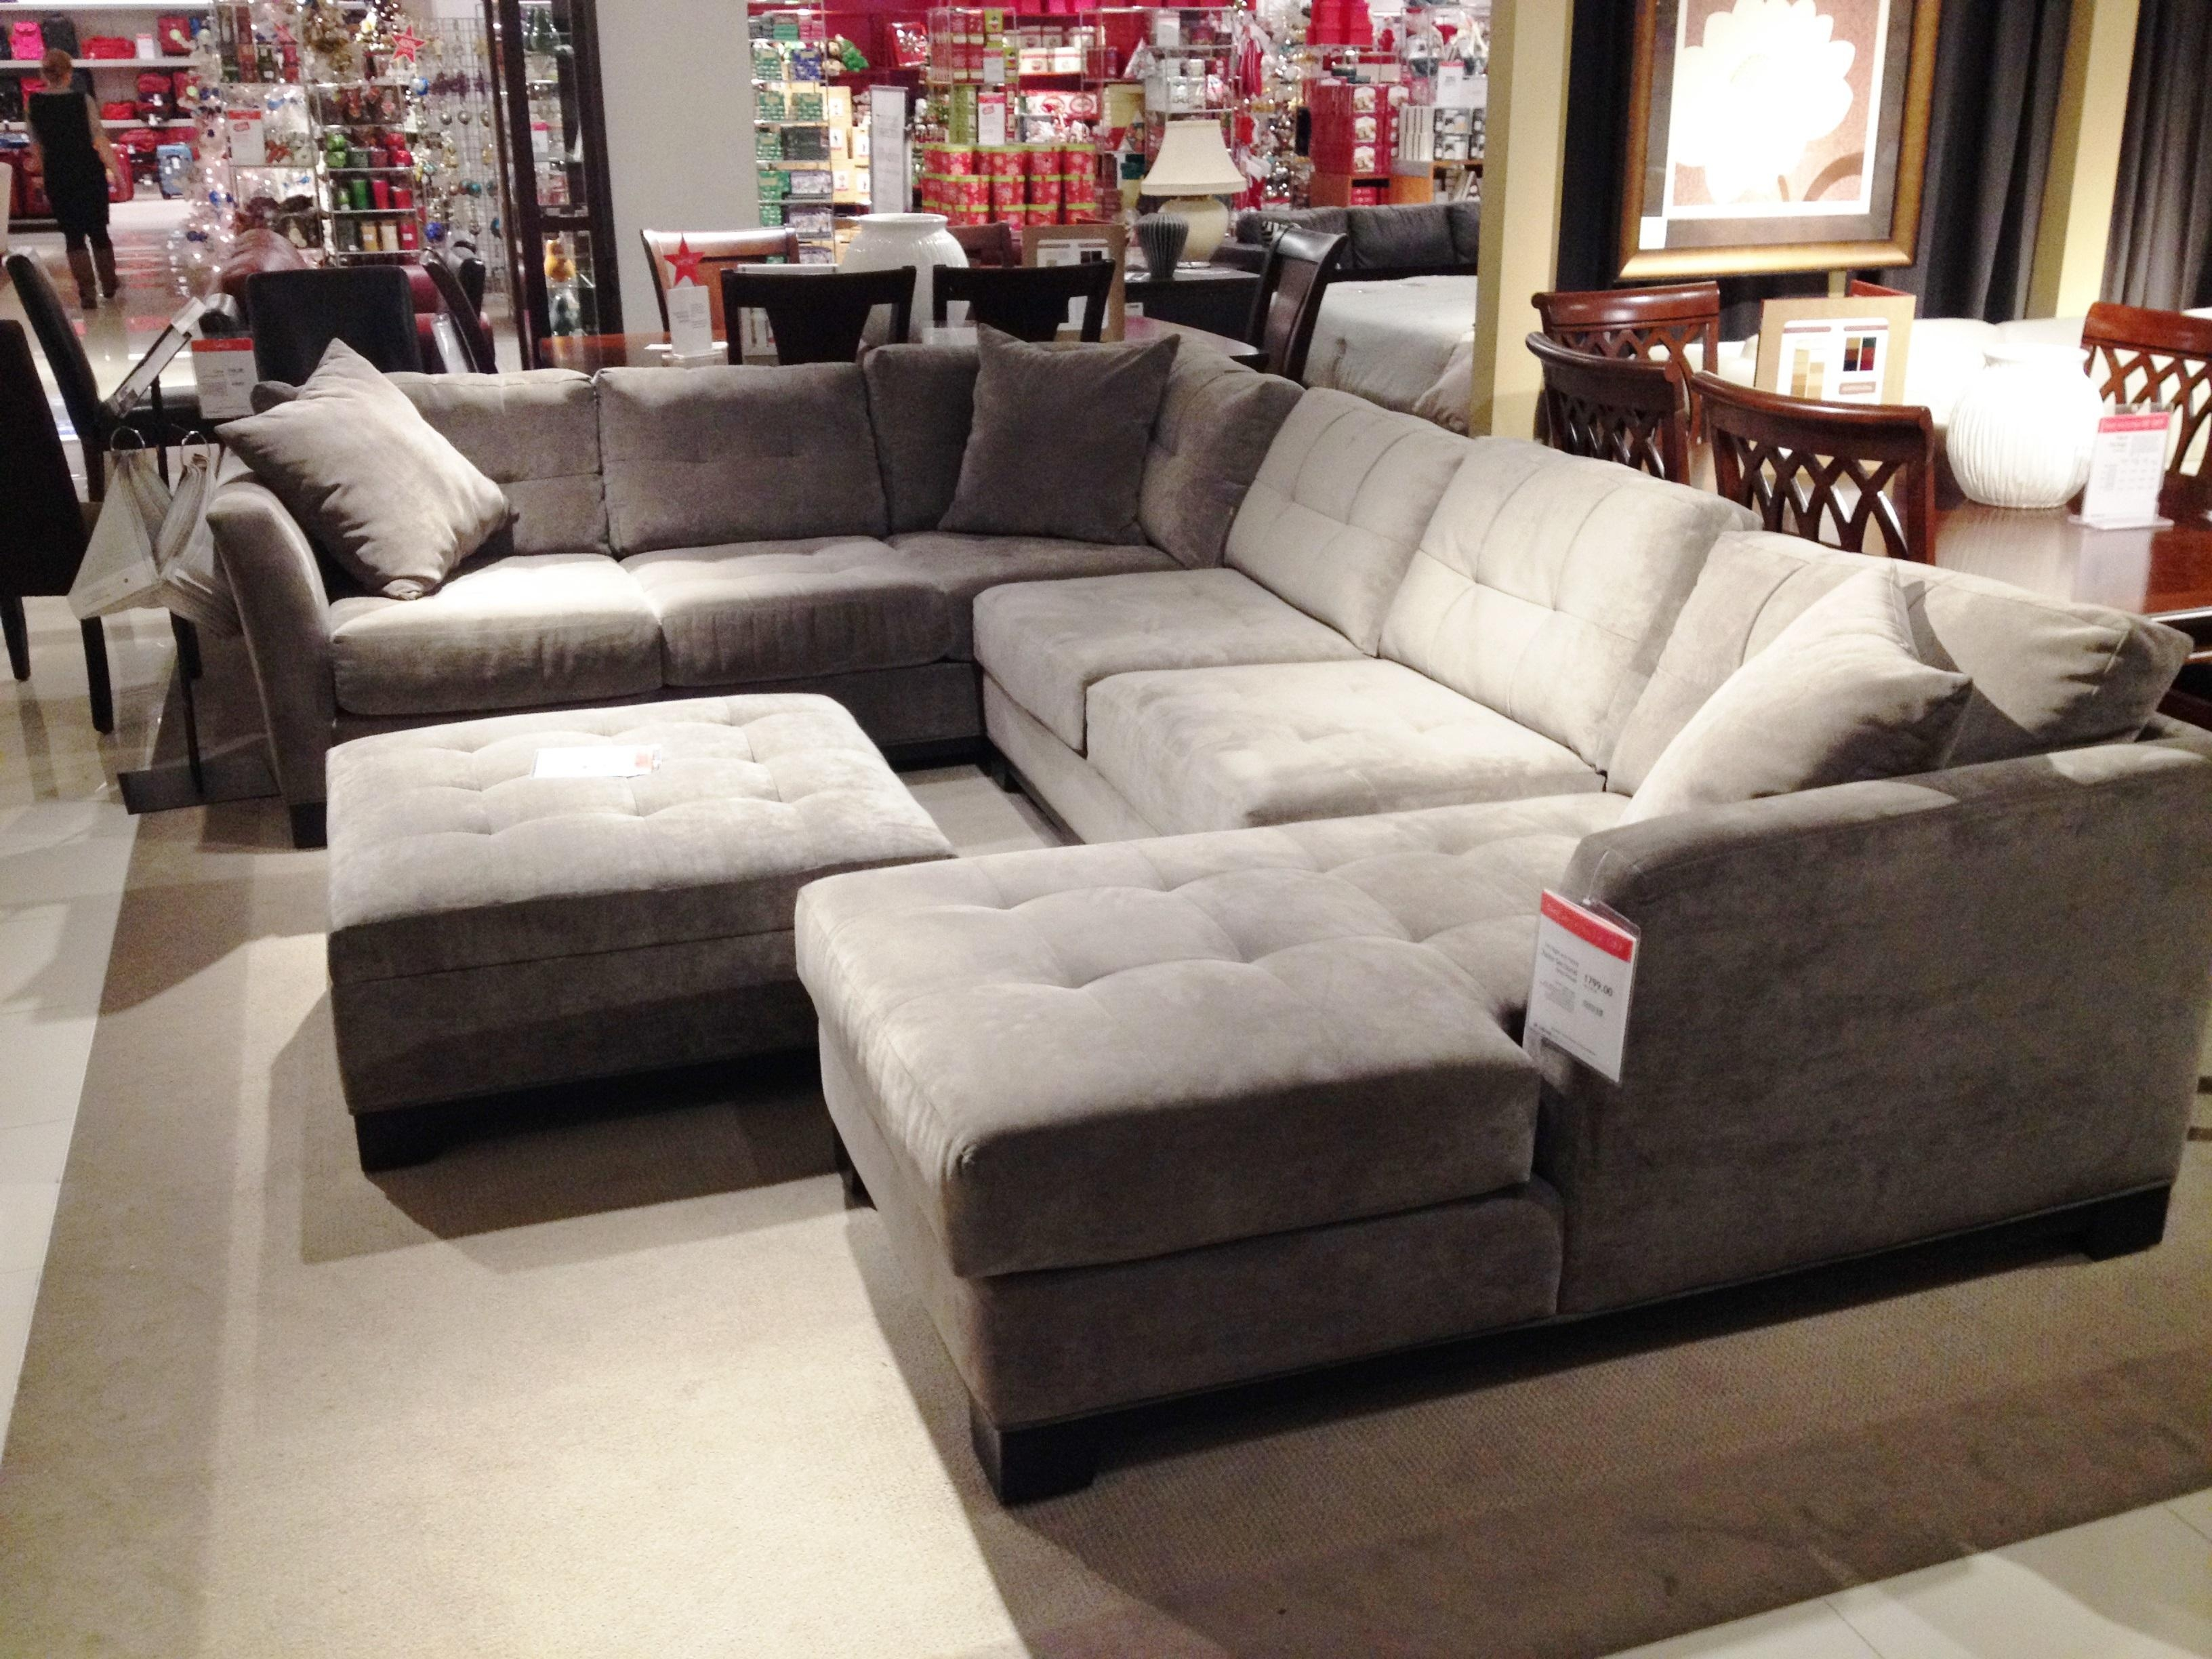 The Sectional Sofa Saga | Mid Century Modern(Ization) In Macys Leather Sectional Sofa (View 2 of 20)